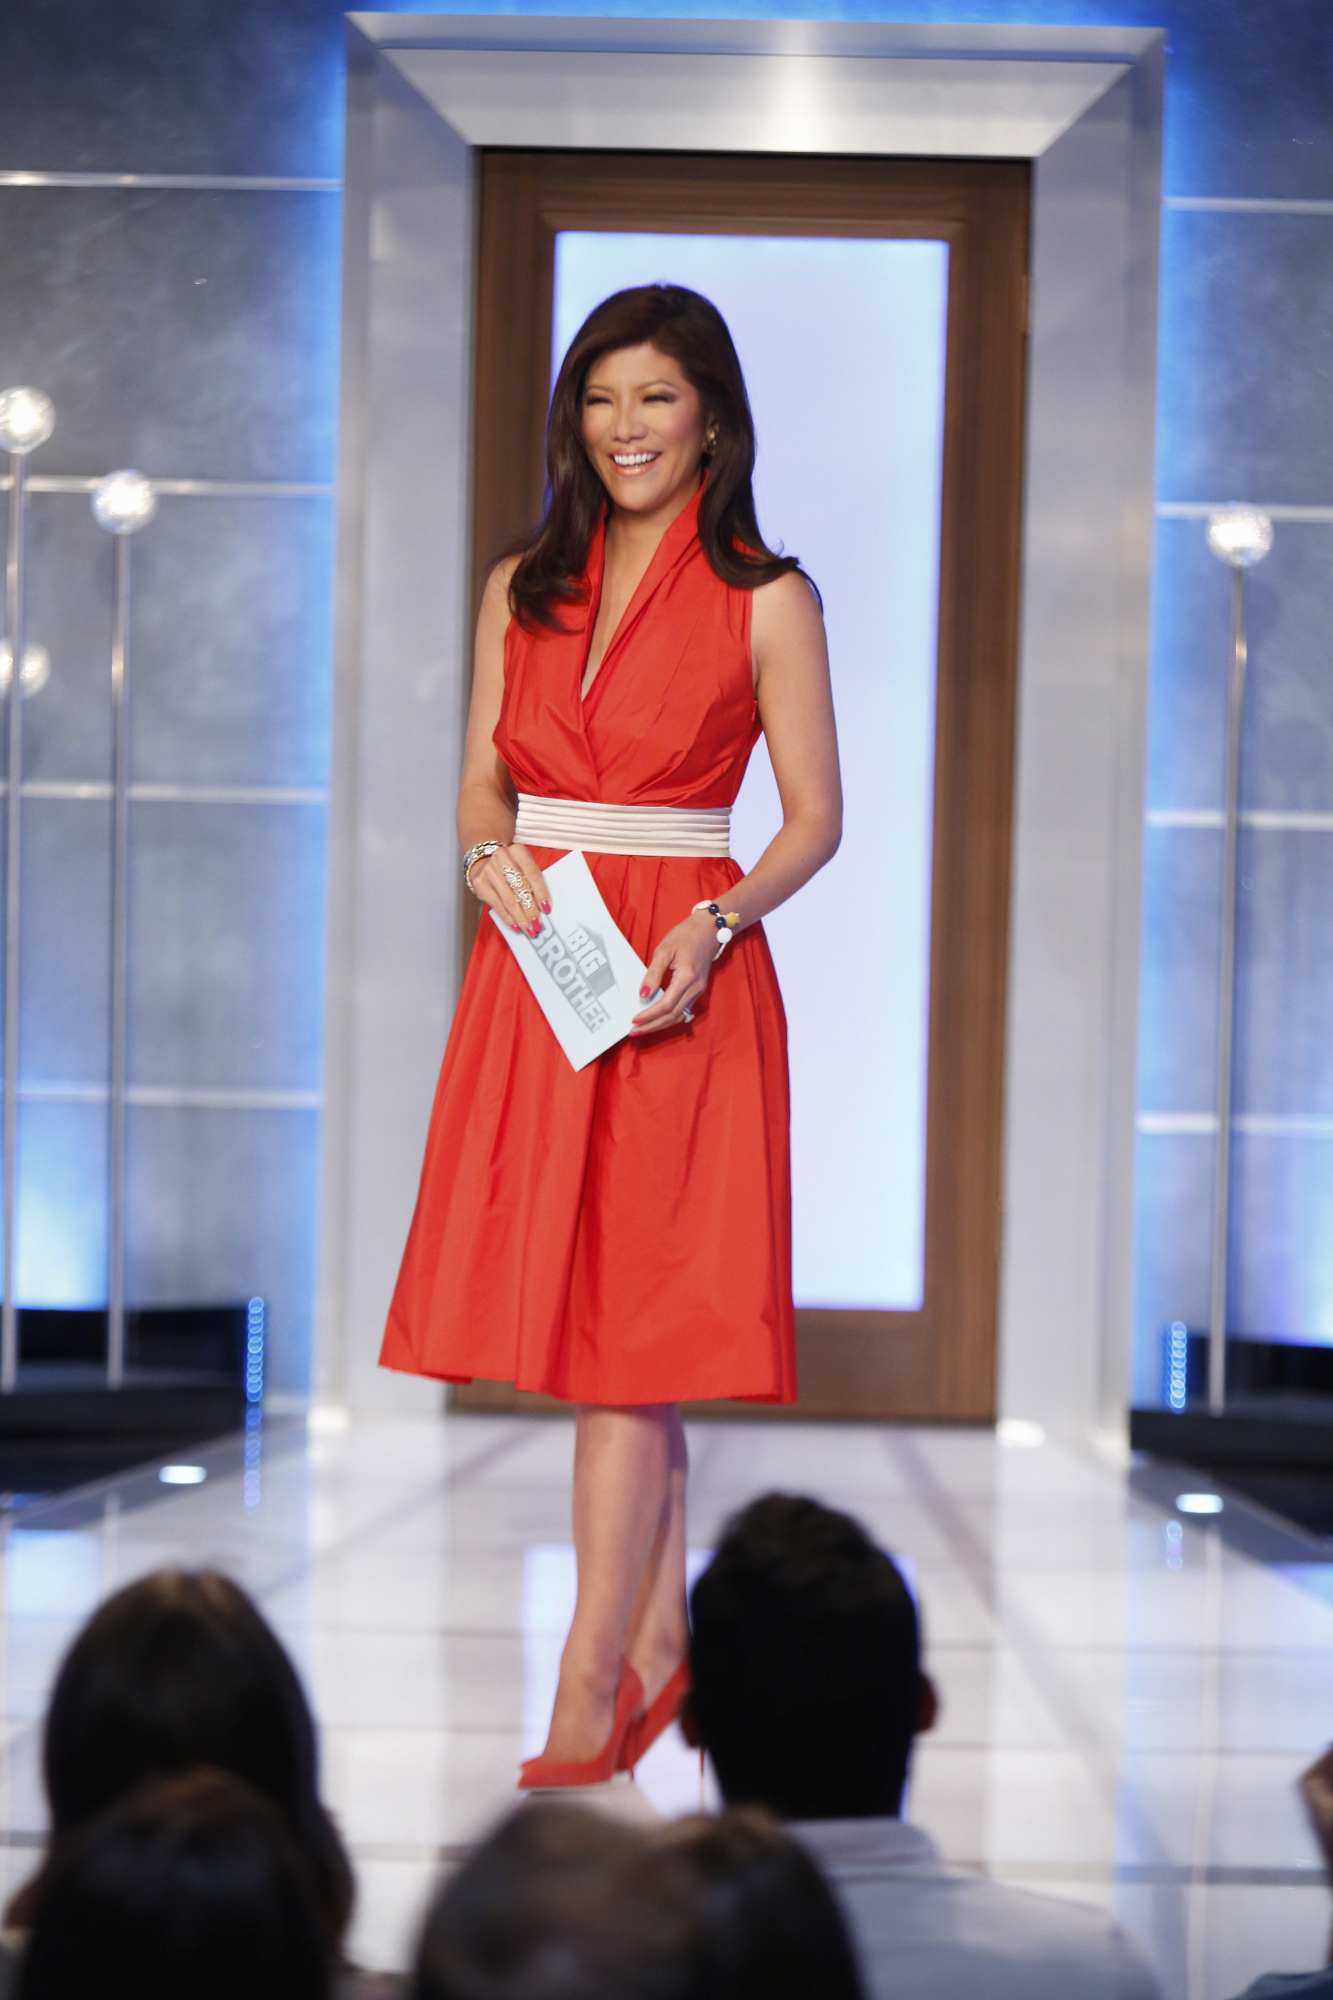 Julie Chen kicks off the show